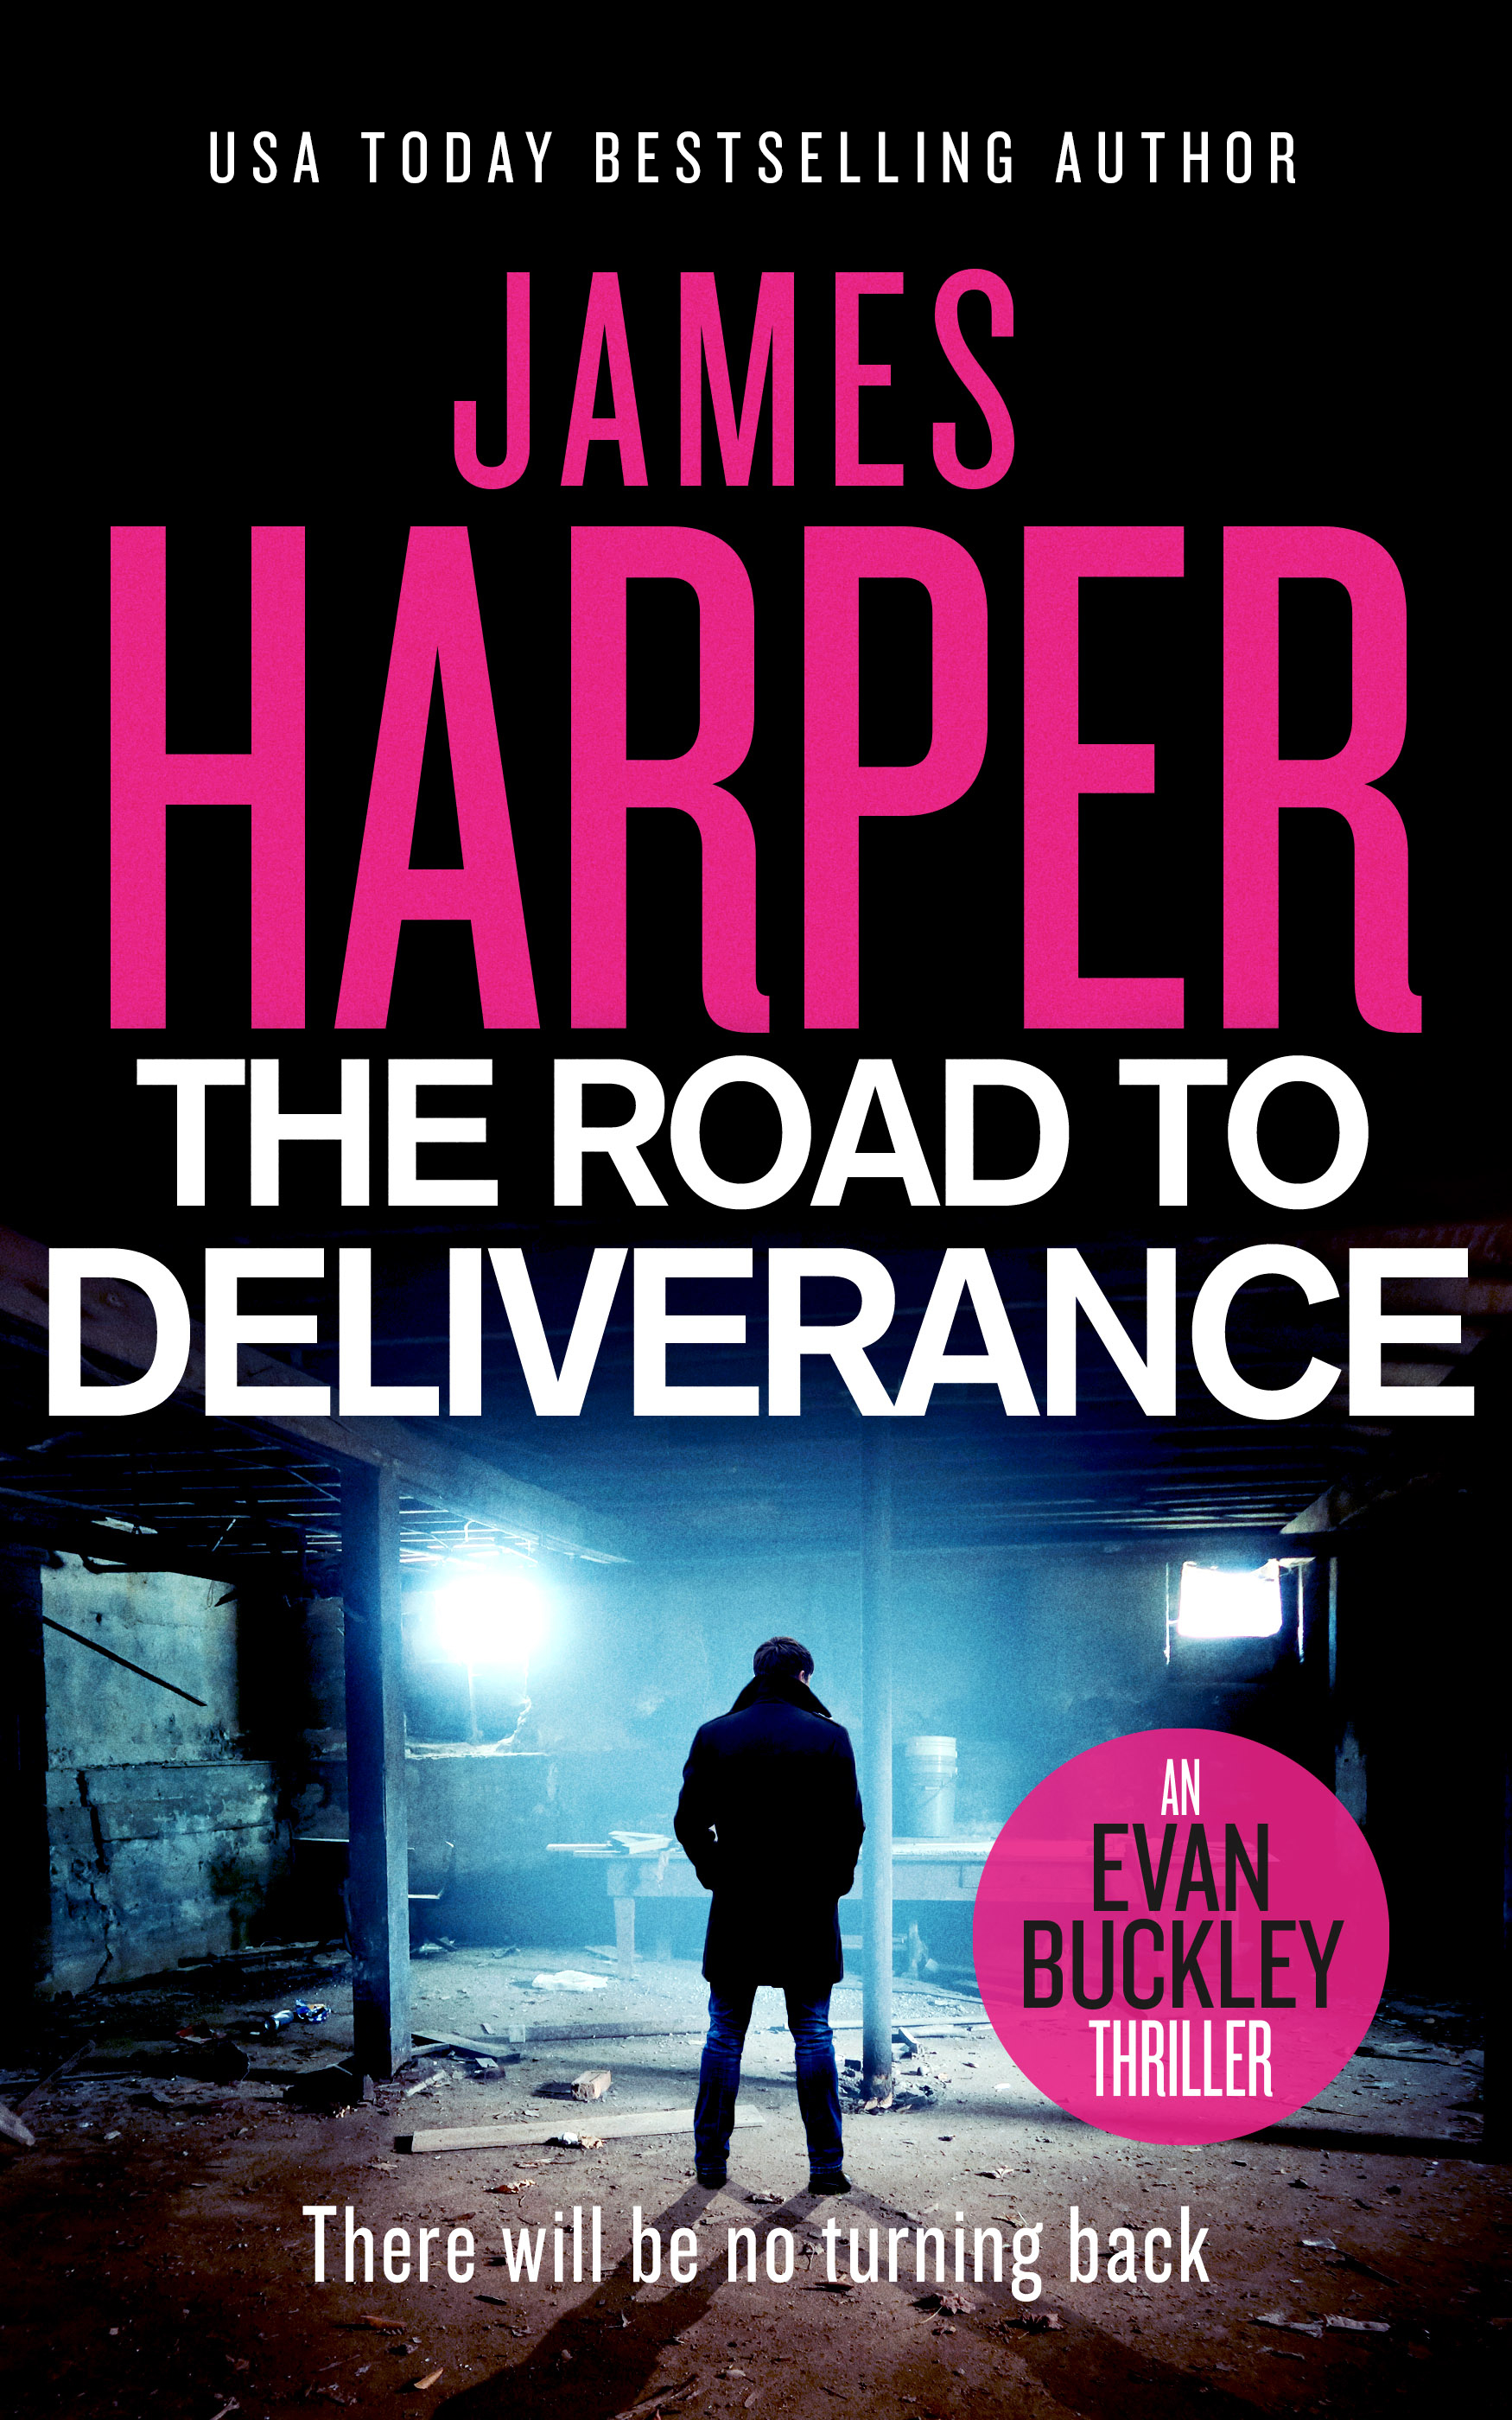 The Road To Deliverance